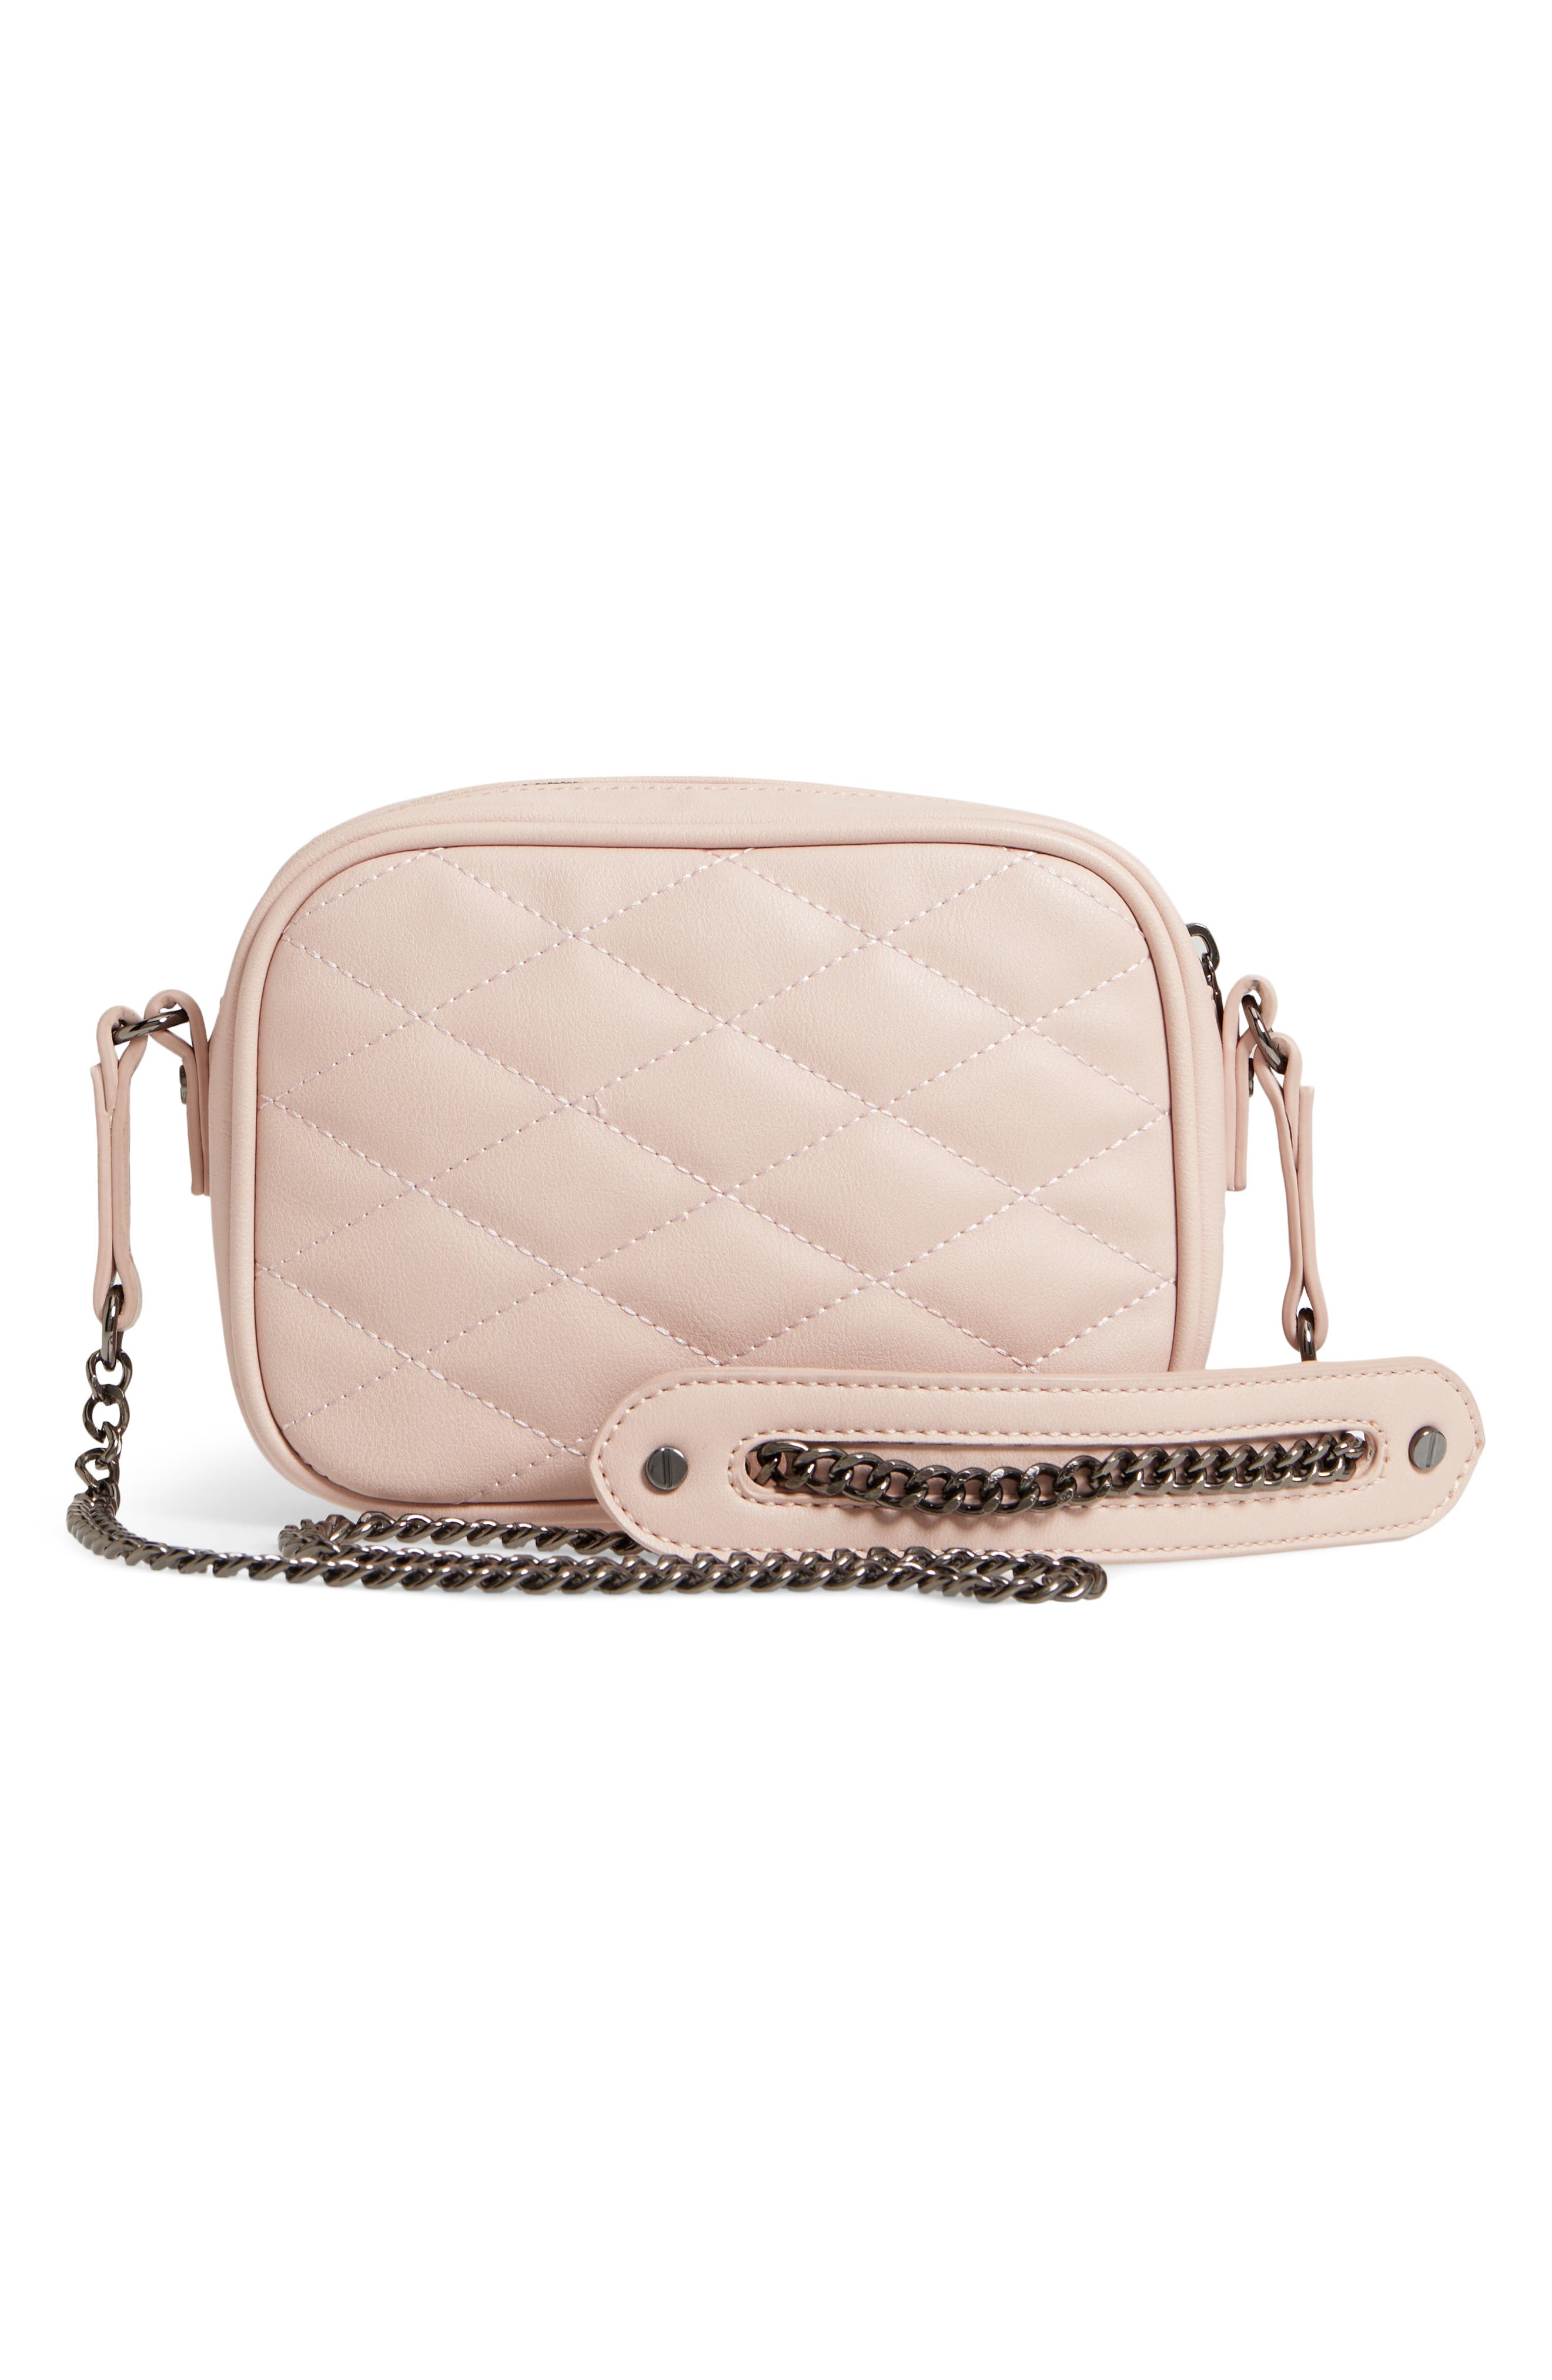 MALI + LILI, Taylor Quilted Vegan Leather Crossbody Camera Bag, Alternate thumbnail 4, color, 650